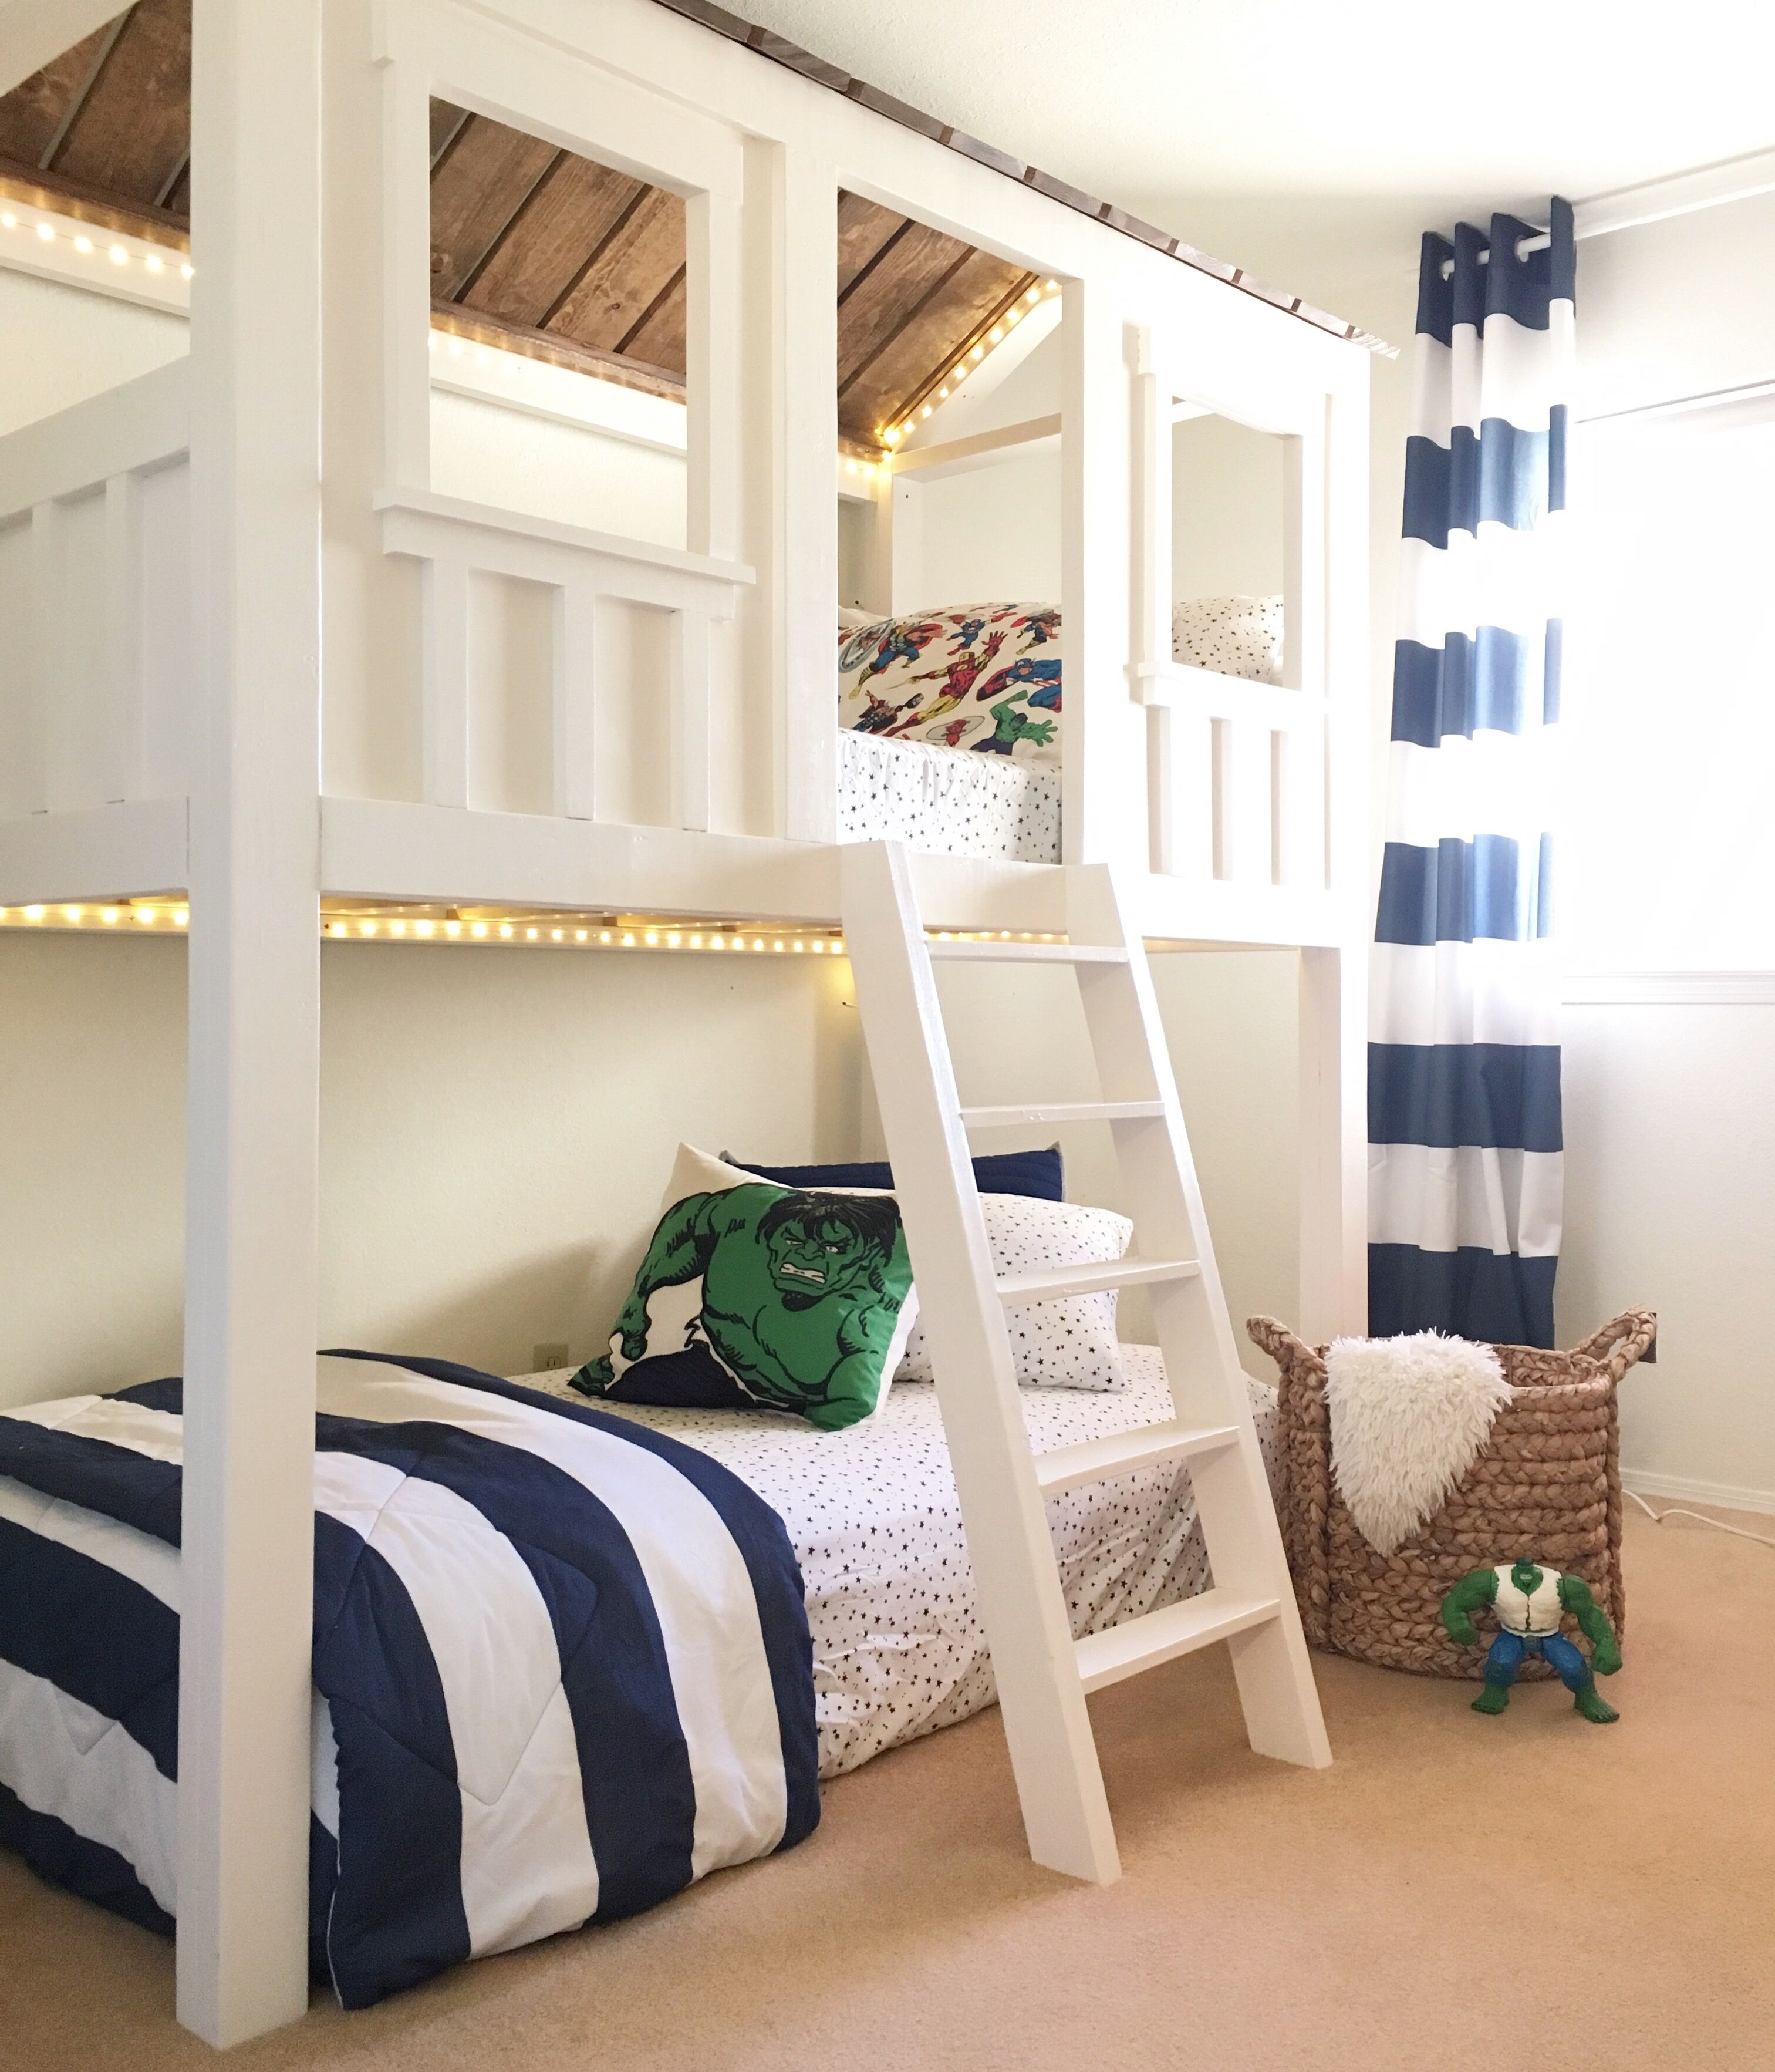 Ana White Loft Cabin Bed Diy Projects Loft Bed Plans Diy